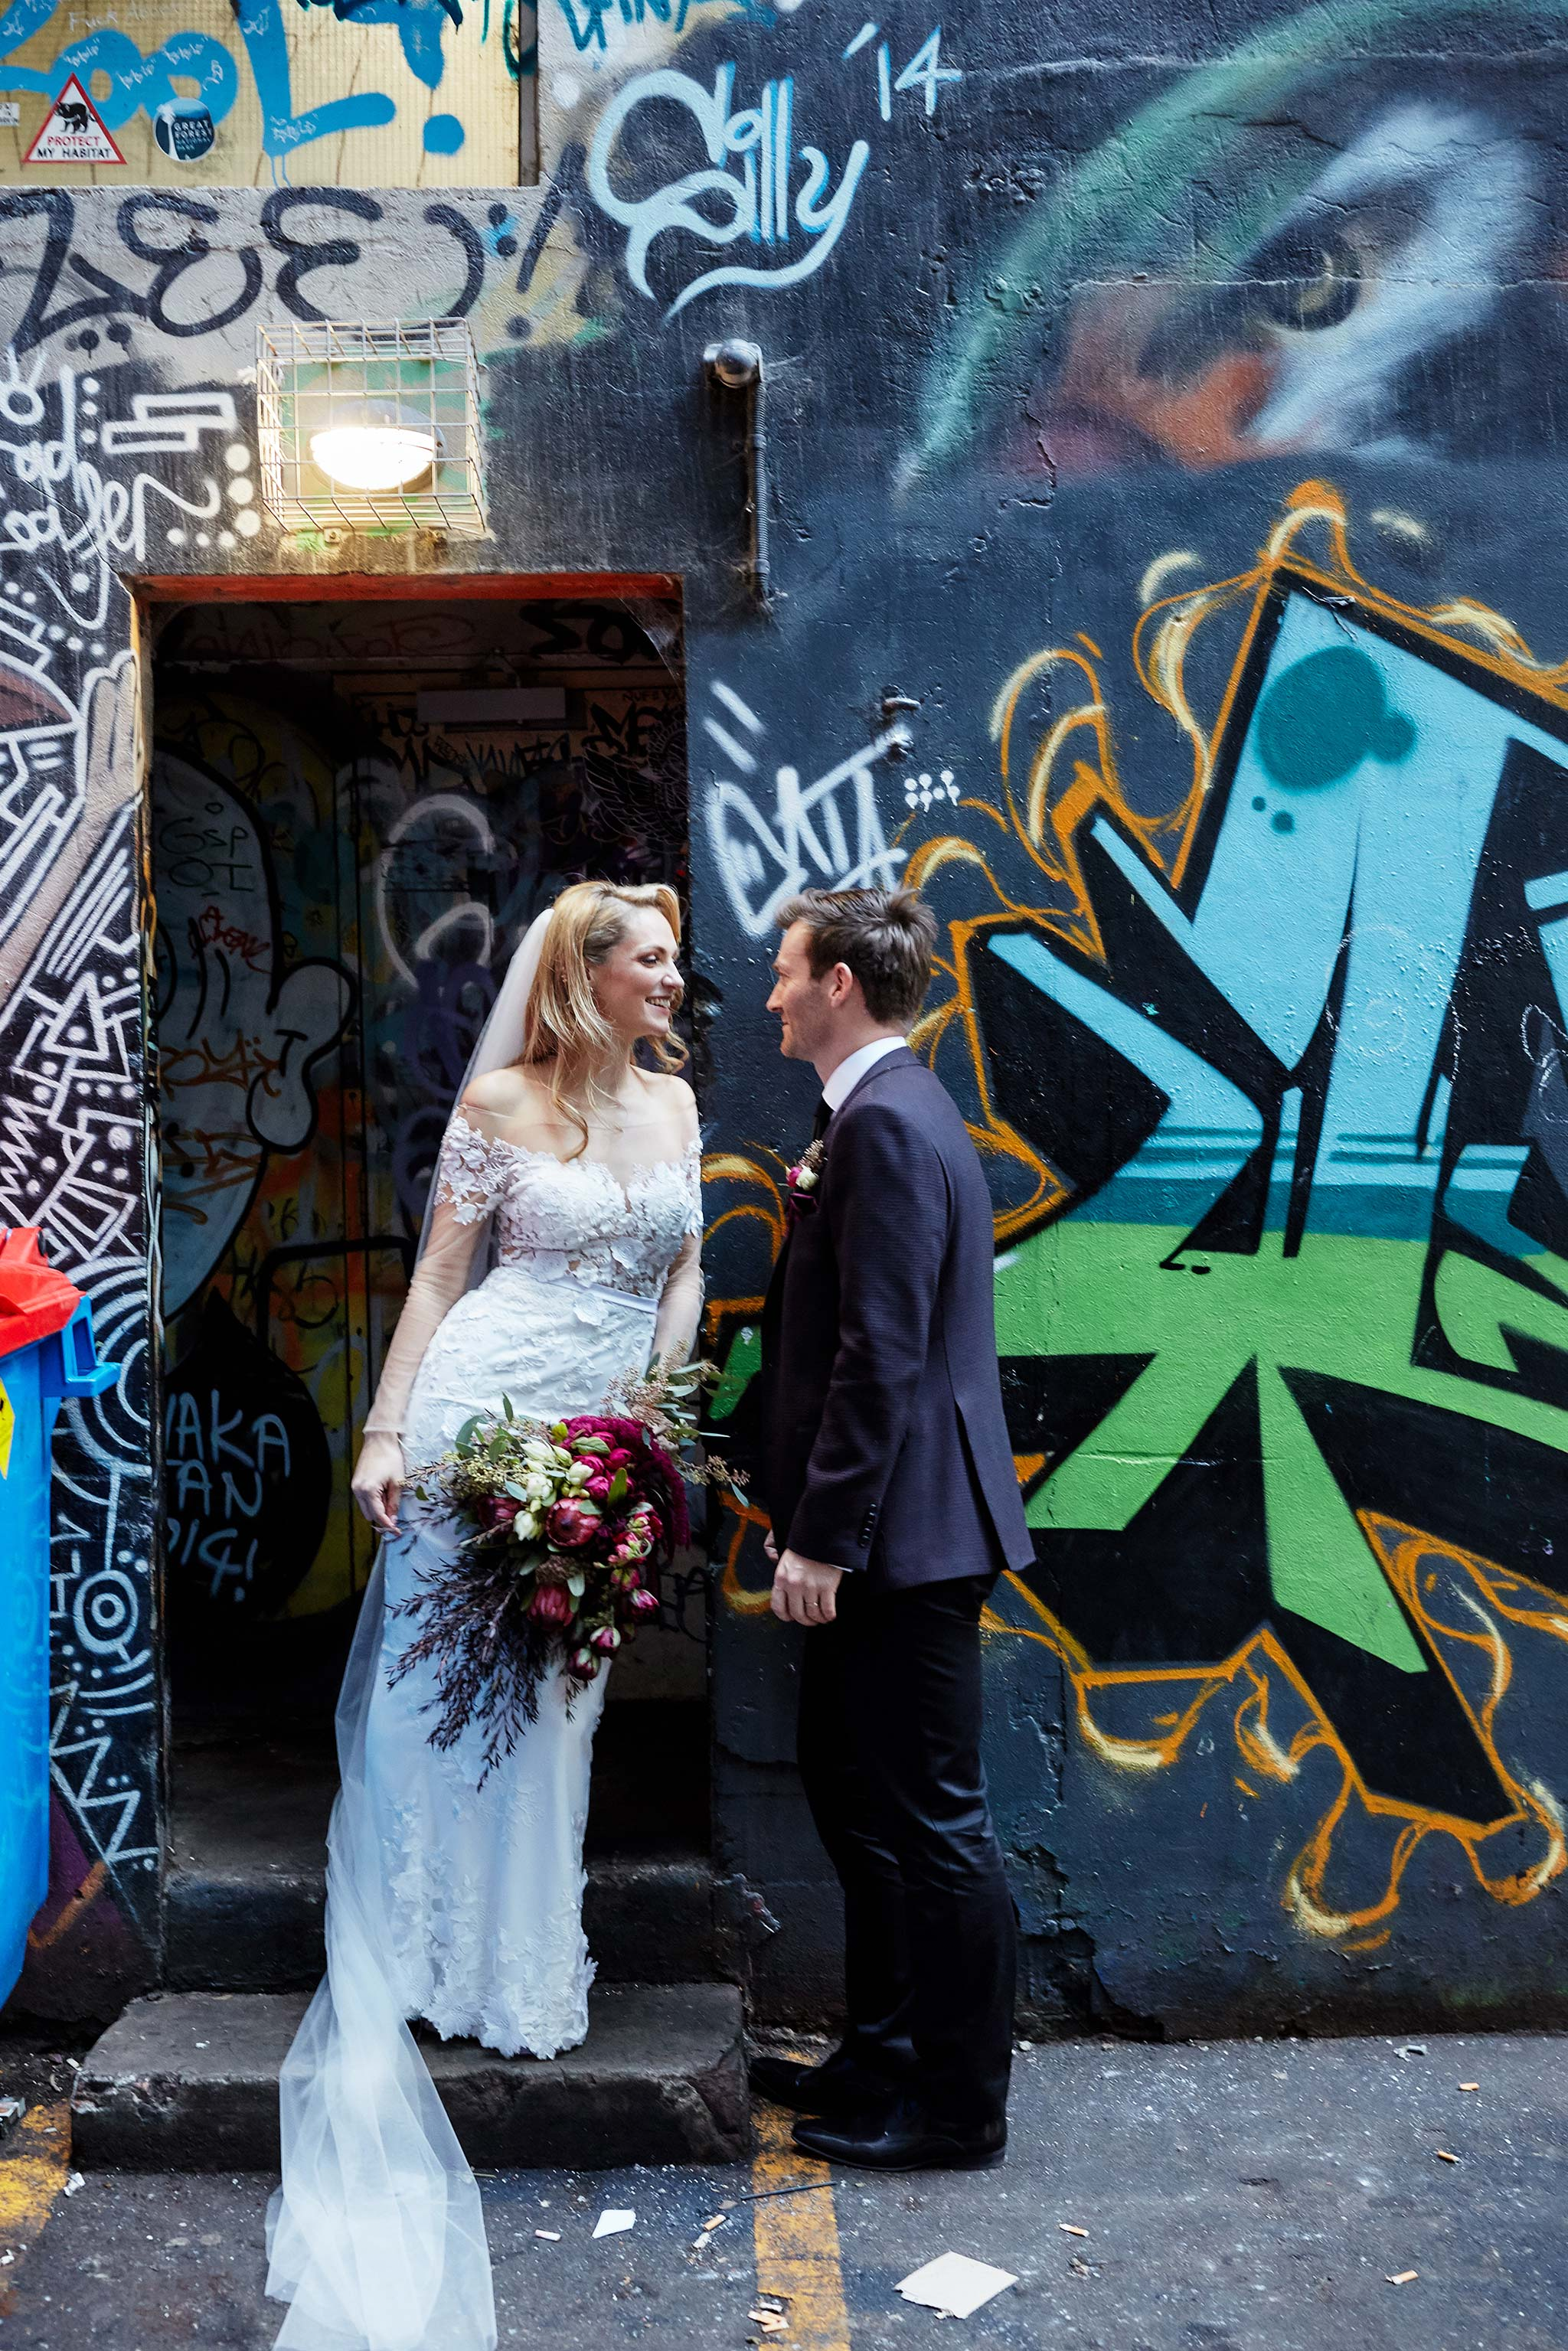 Melbourne-alley-wedding-photographer-bride-groom-portrait-graffiti